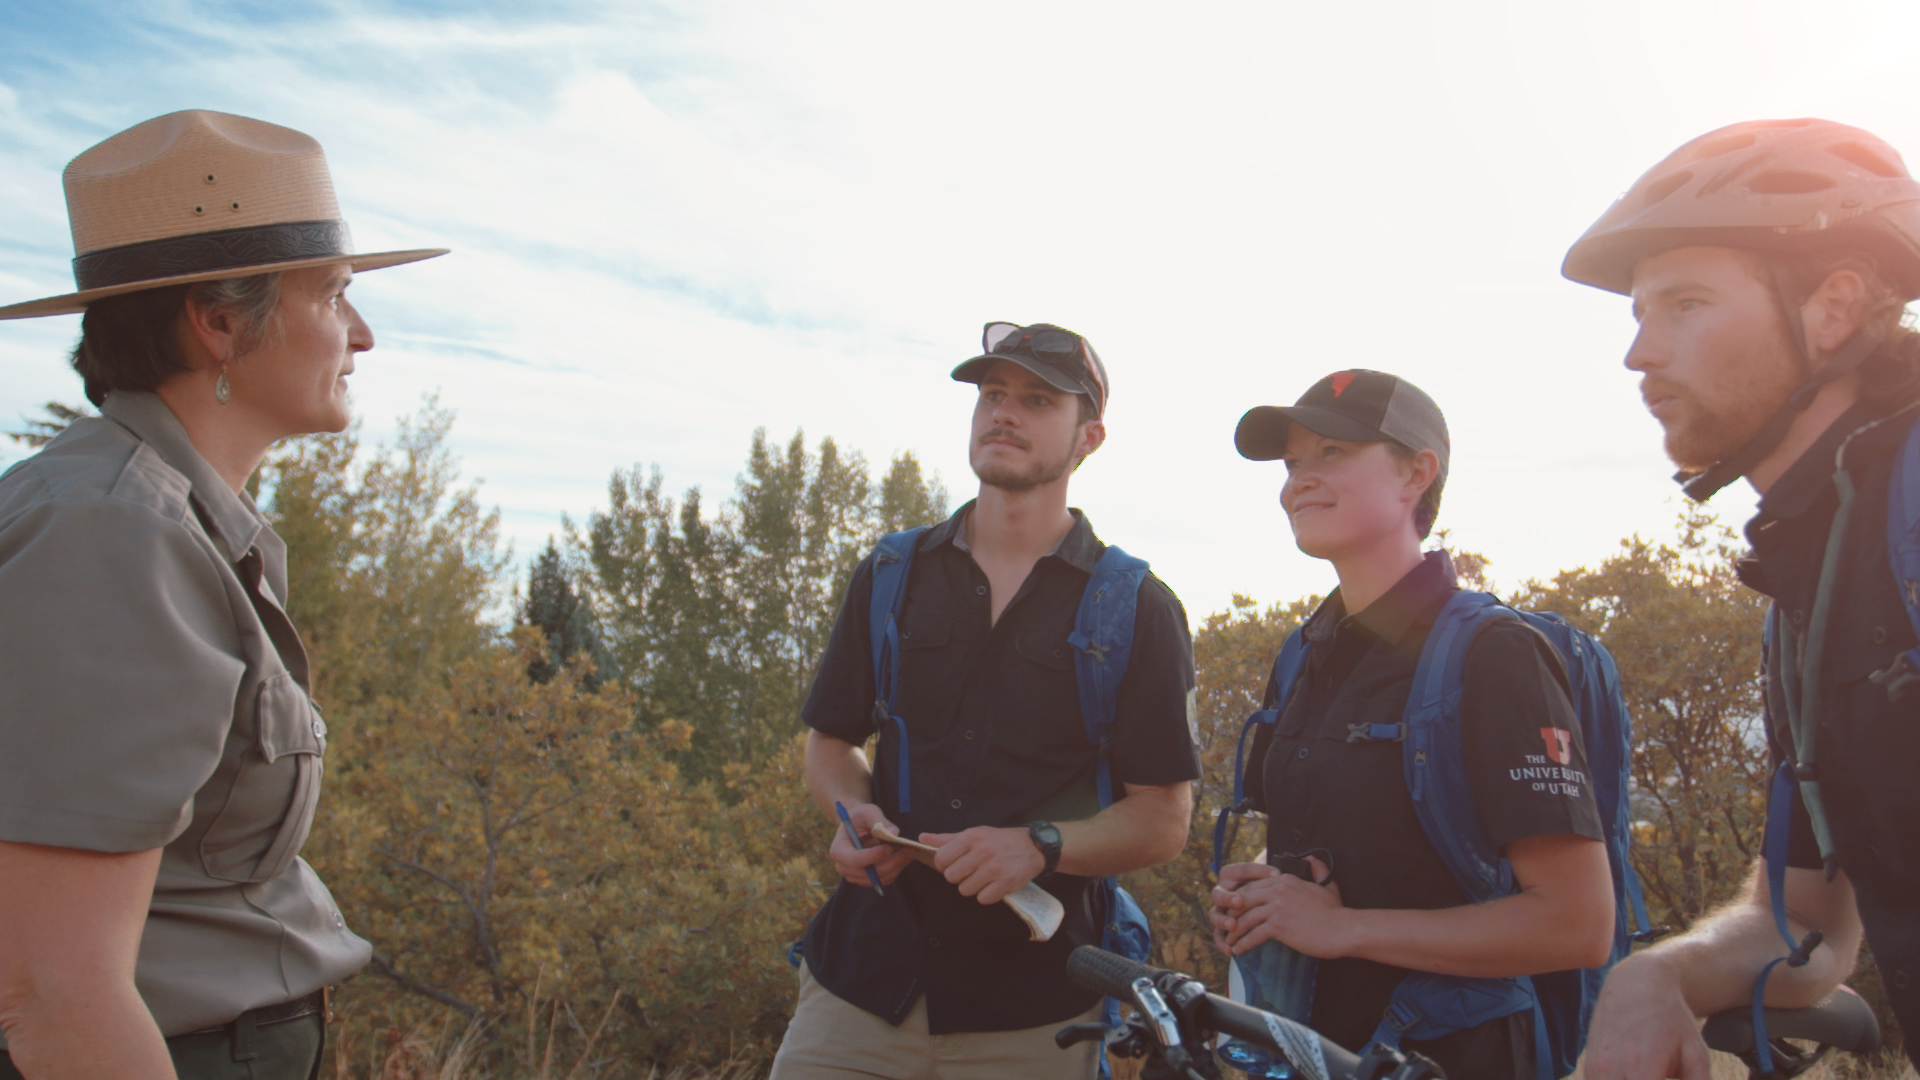 The University of Utah's Department of Parks, Recreation, and Tourism in partnership with the National Park Service developed an Urban Rangers program servicing parts of the 100-mile Bonneville Shoreline Trail